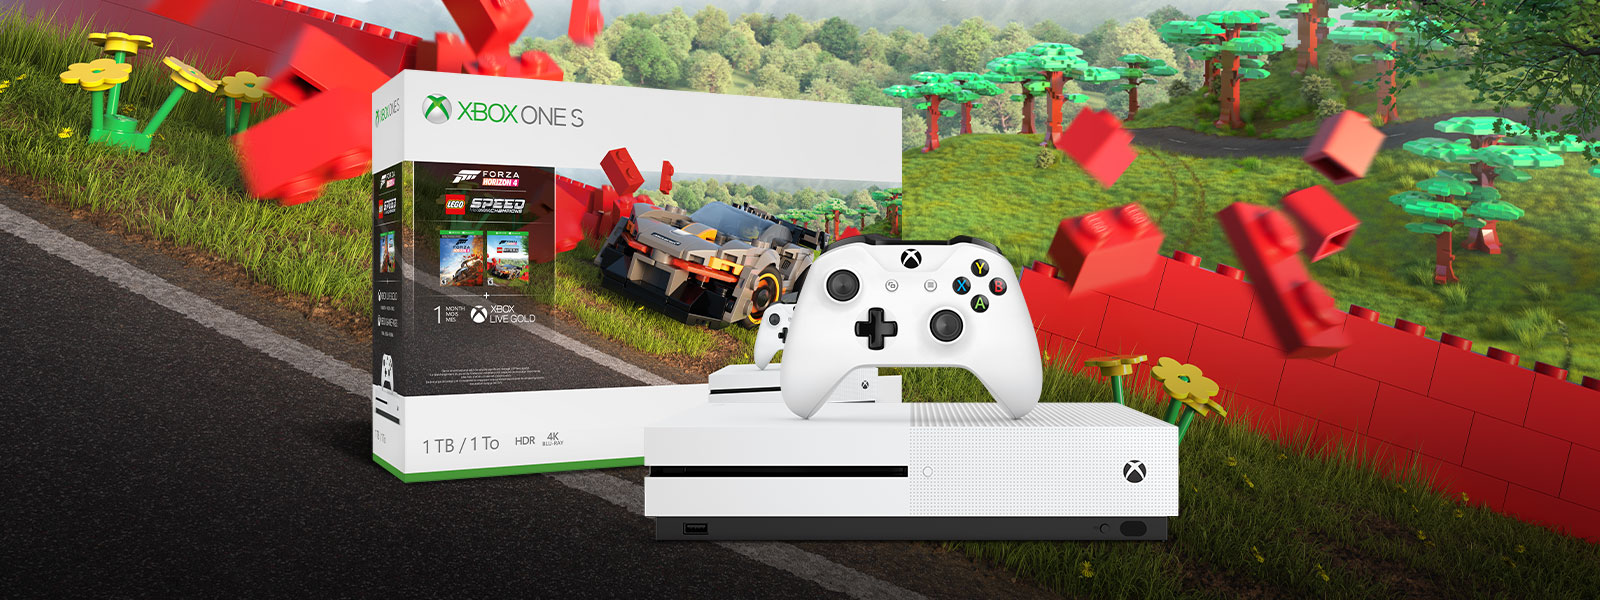 Xbox One S Forza Horizon 4 LEGO® Speed Champions bundle art in front of Forza Horizon Lego landscape